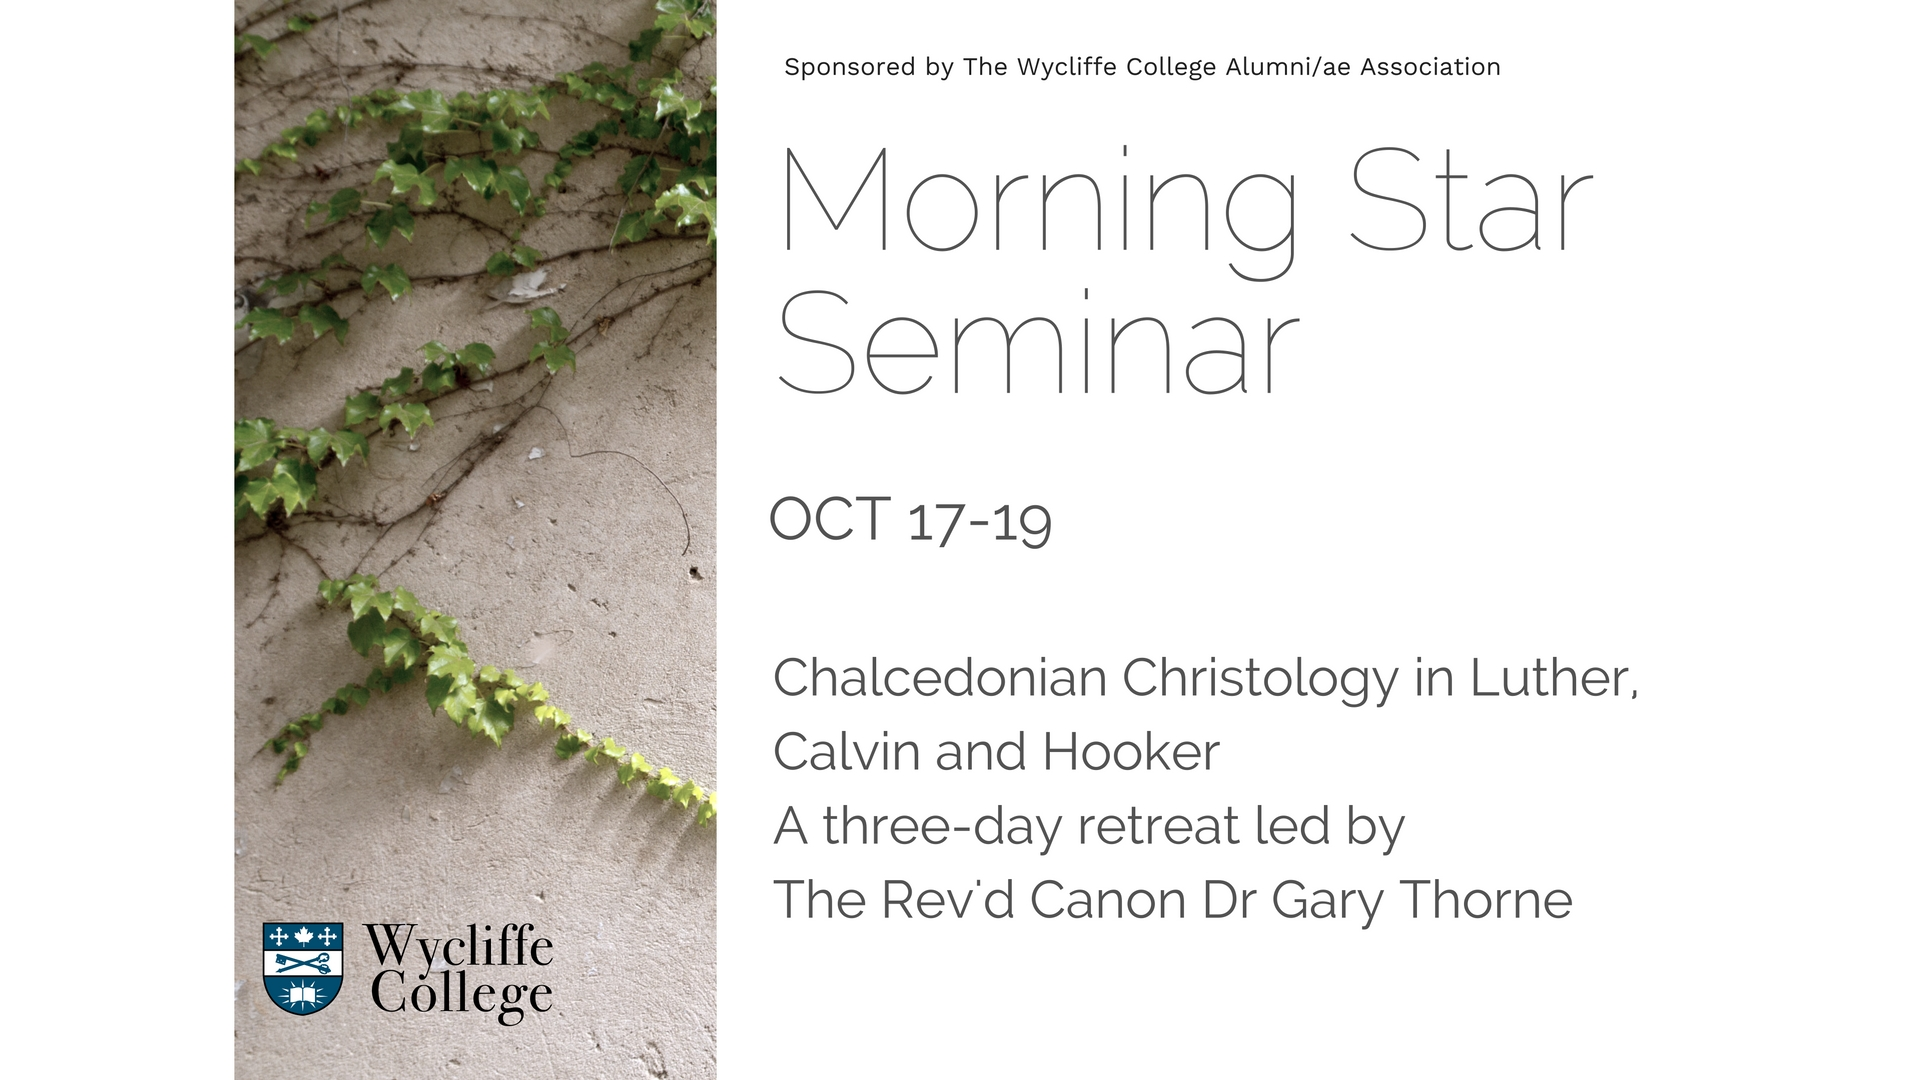 Morning Star Seminar